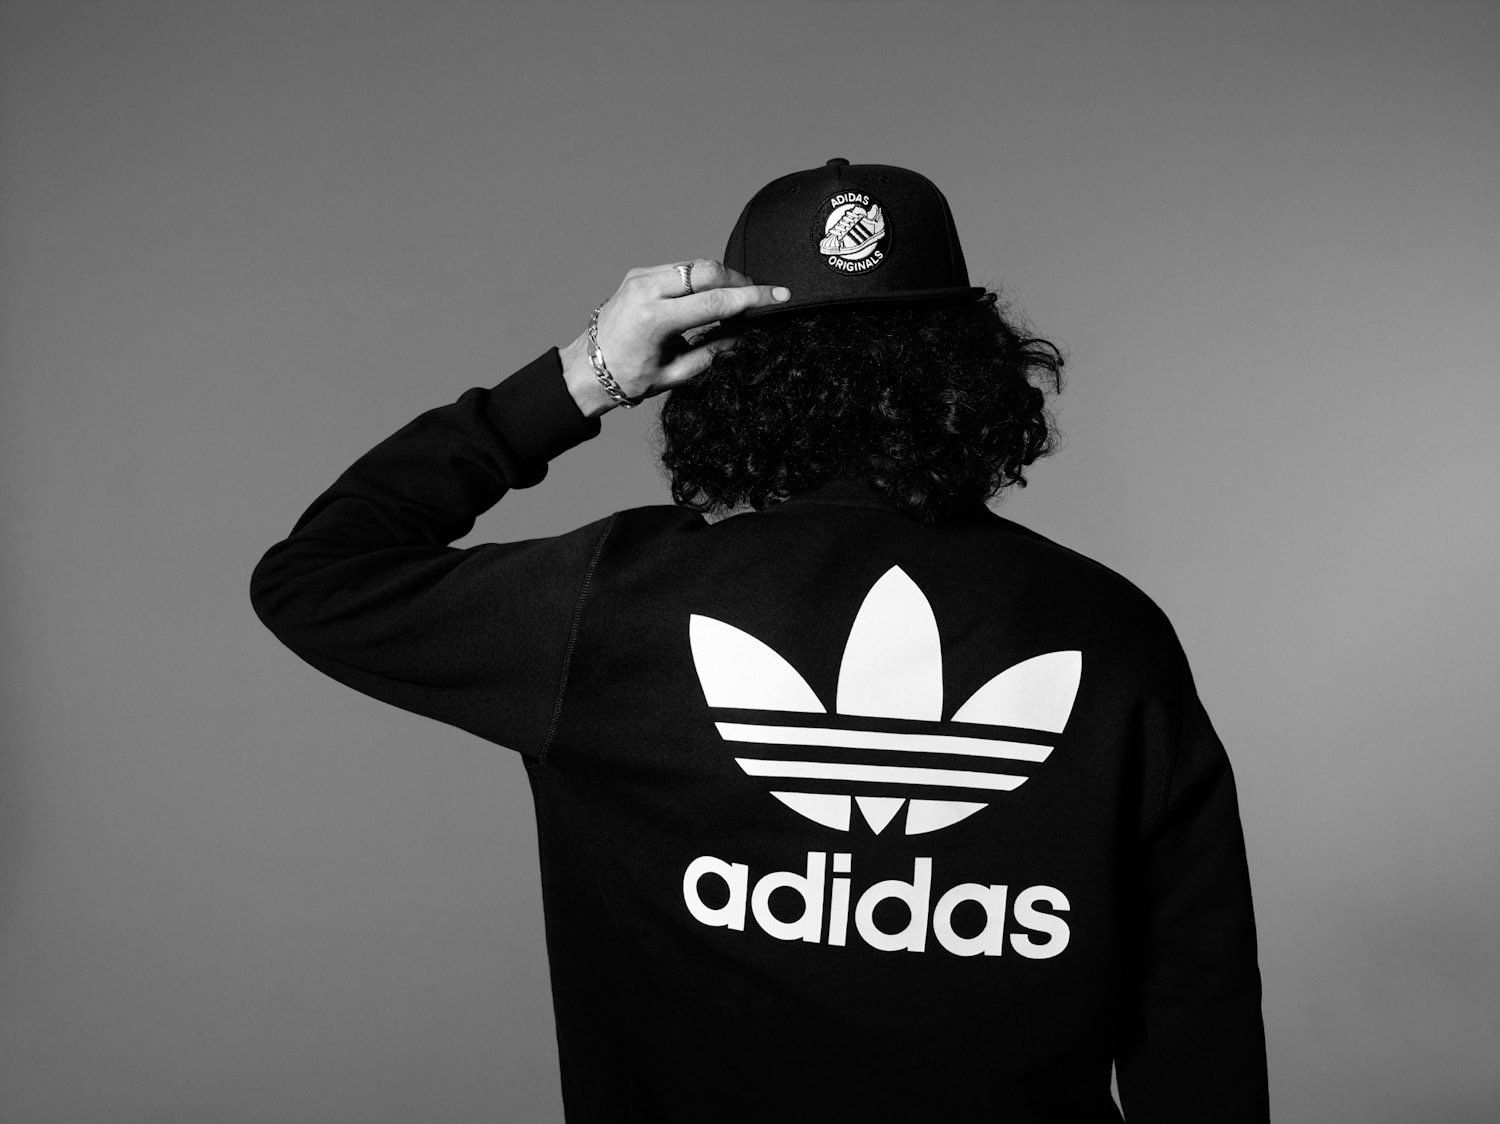 adidas Originals Shelltoe Mens Apparel Capsule 9